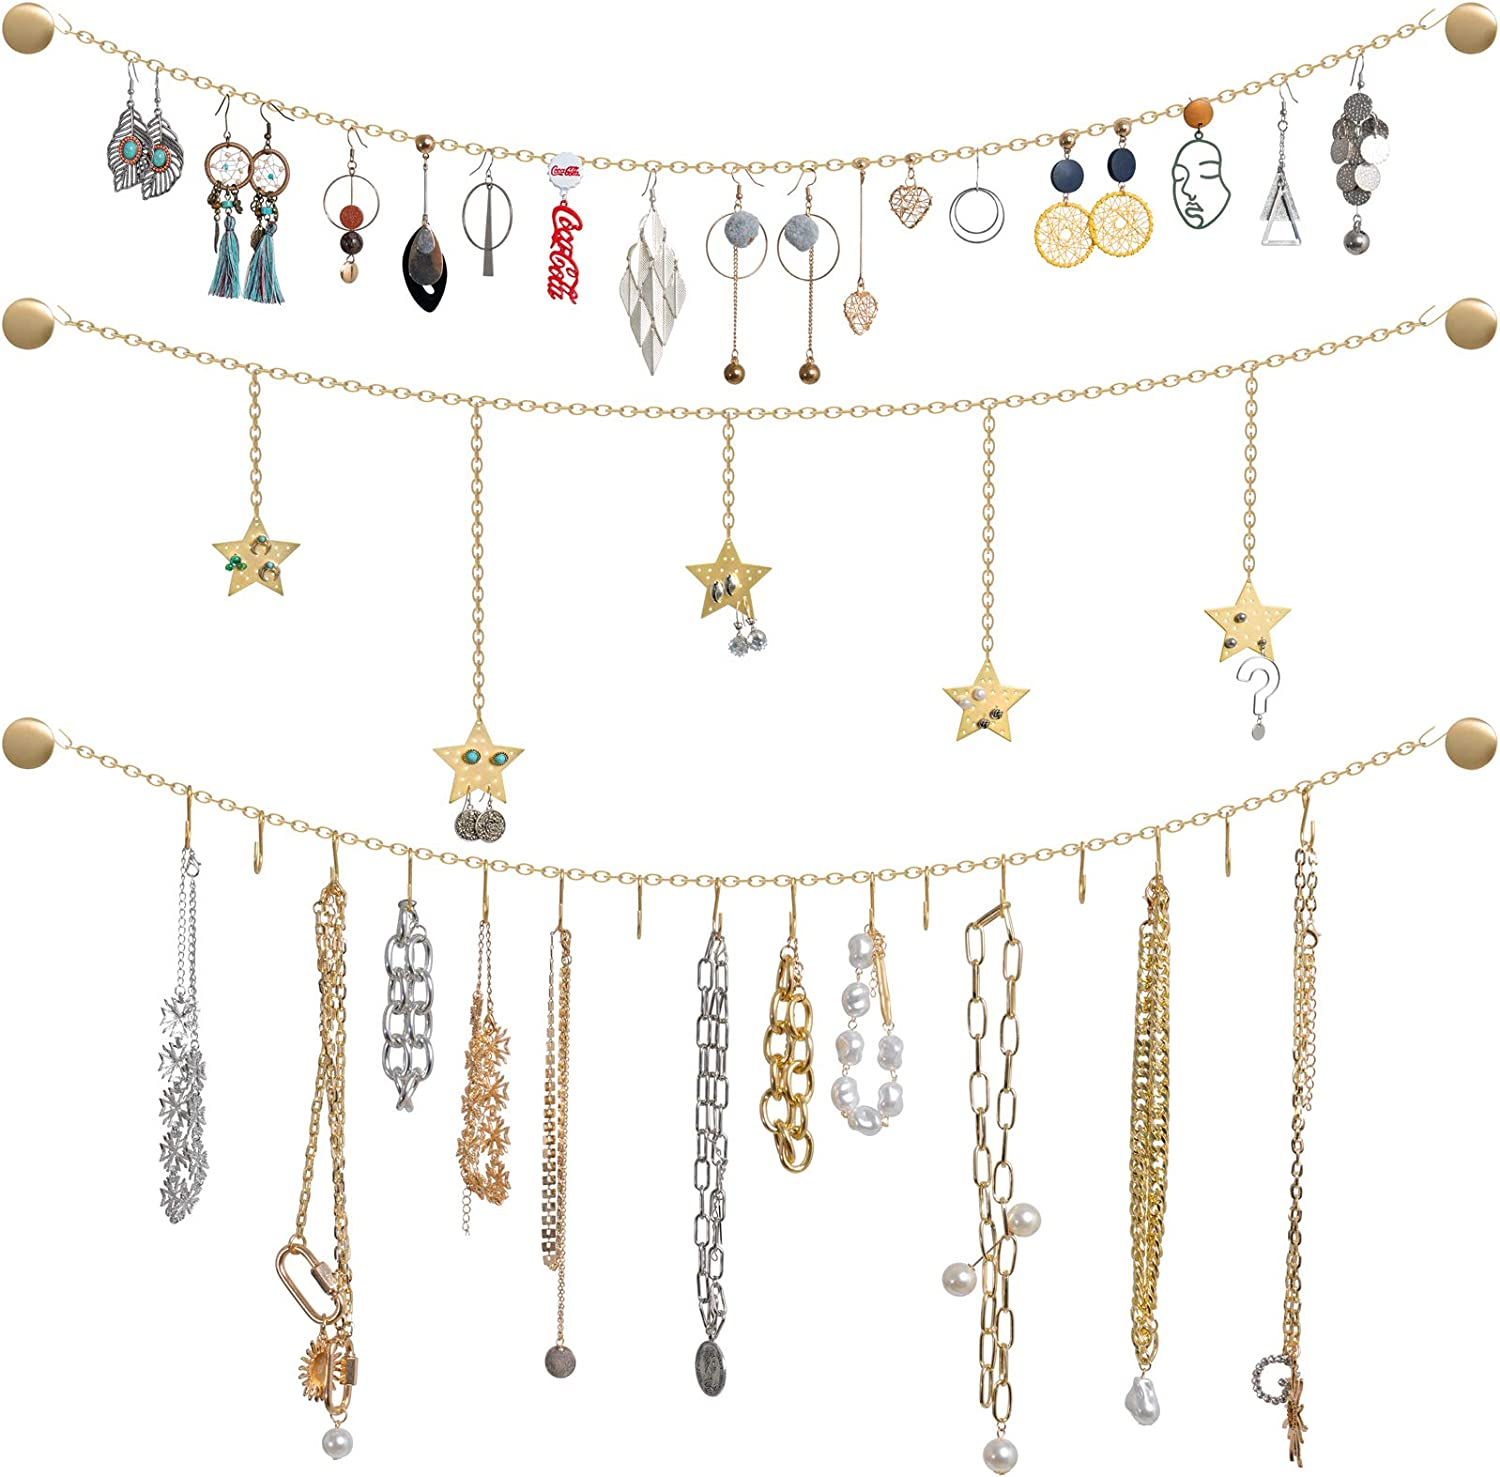 Mkono Wall Hanging Jewelry Organizer with Stars Garland Metal Jewelry Earring Holder with 16 Hooks Stylish Storage and Display Rack for Necklaces Bracelets Rings Home Decor, Gold